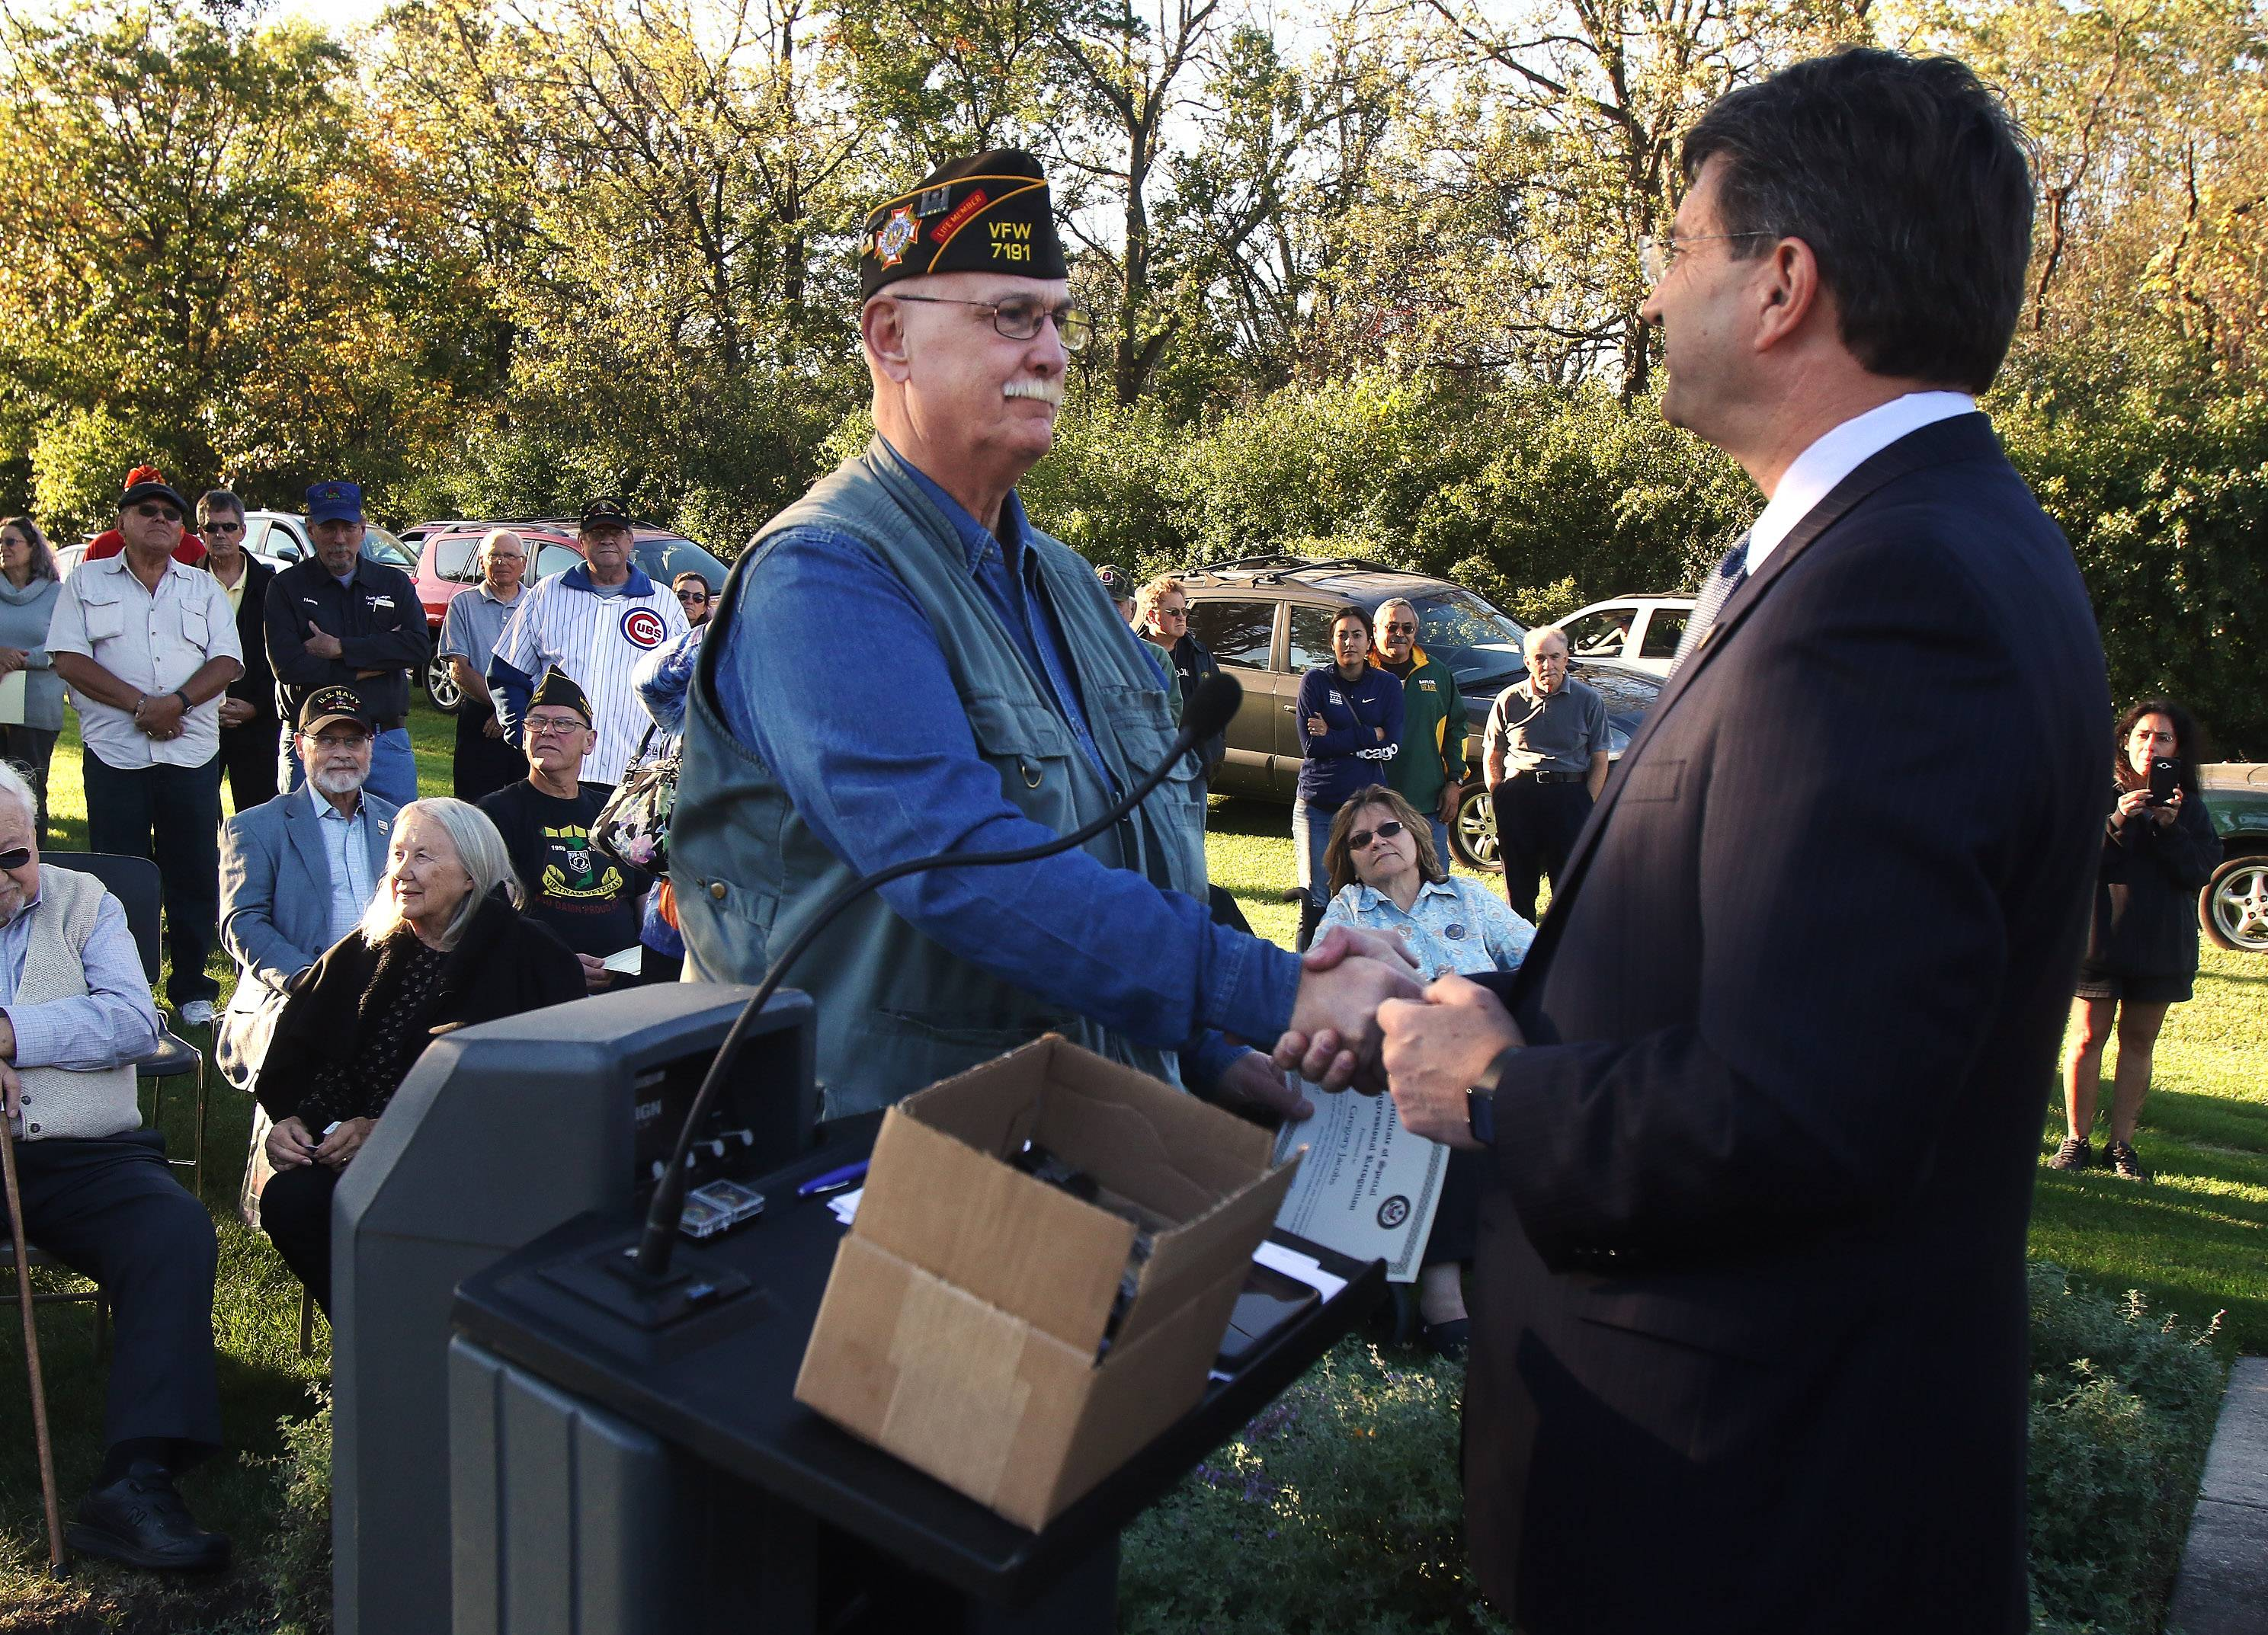 U.S. Rep. Brad Schneider hands out a Vietnam Veteran lapel pin to Gregory Jacobs of Mundelein. Jacobs was one of more than 60 veterans to attend a recognition ceremony Tuesday for veterans at the Mundelein Veterans Memorial.